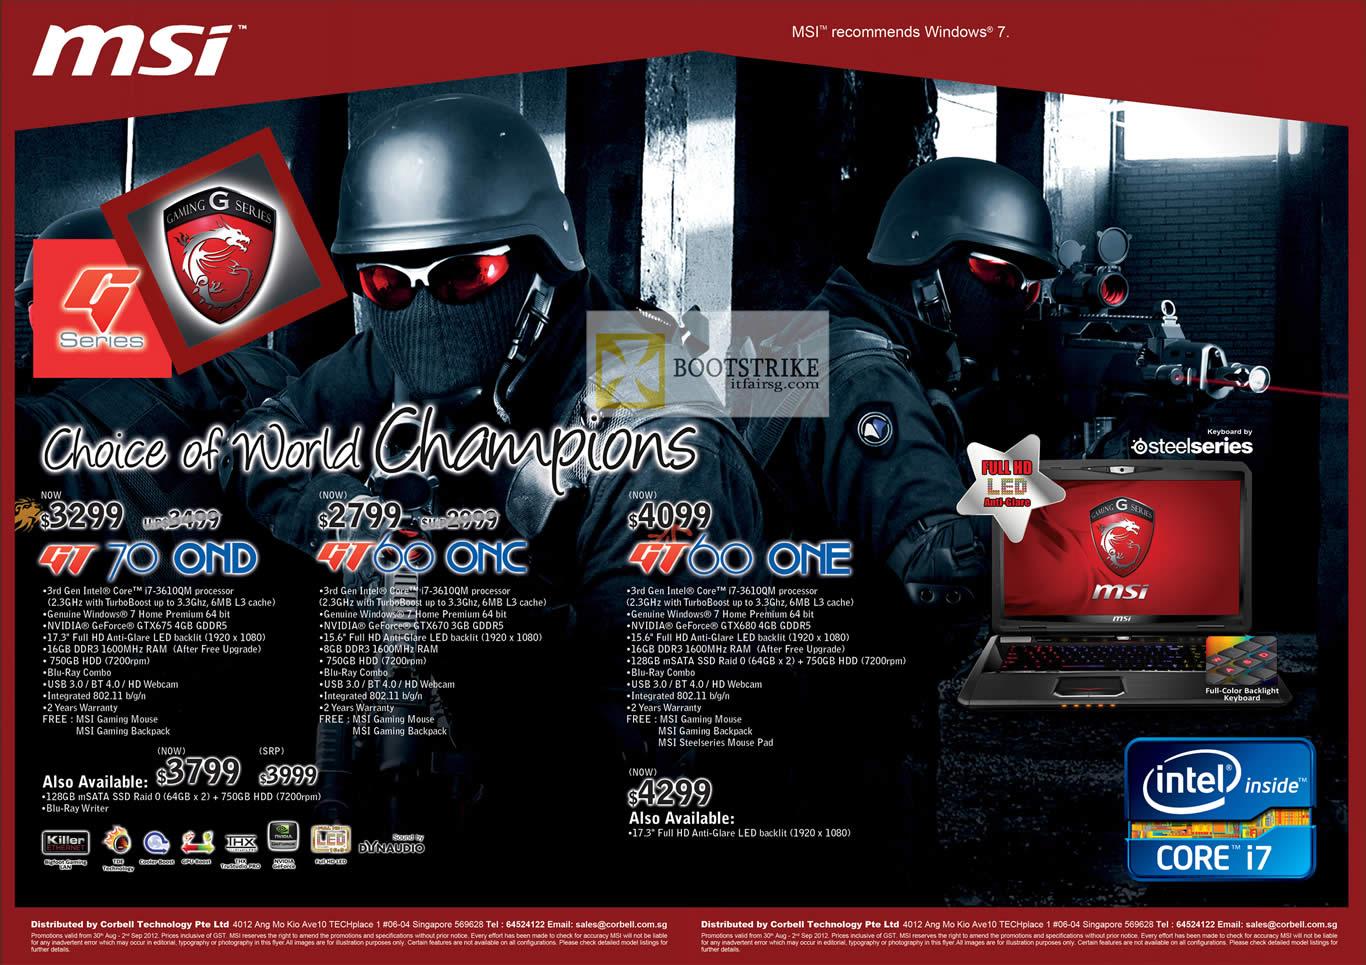 COMEX 2012 price list image brochure of Corbell MSI Notebooks GT70 0ND, GT60 0NC, GT60 0NE